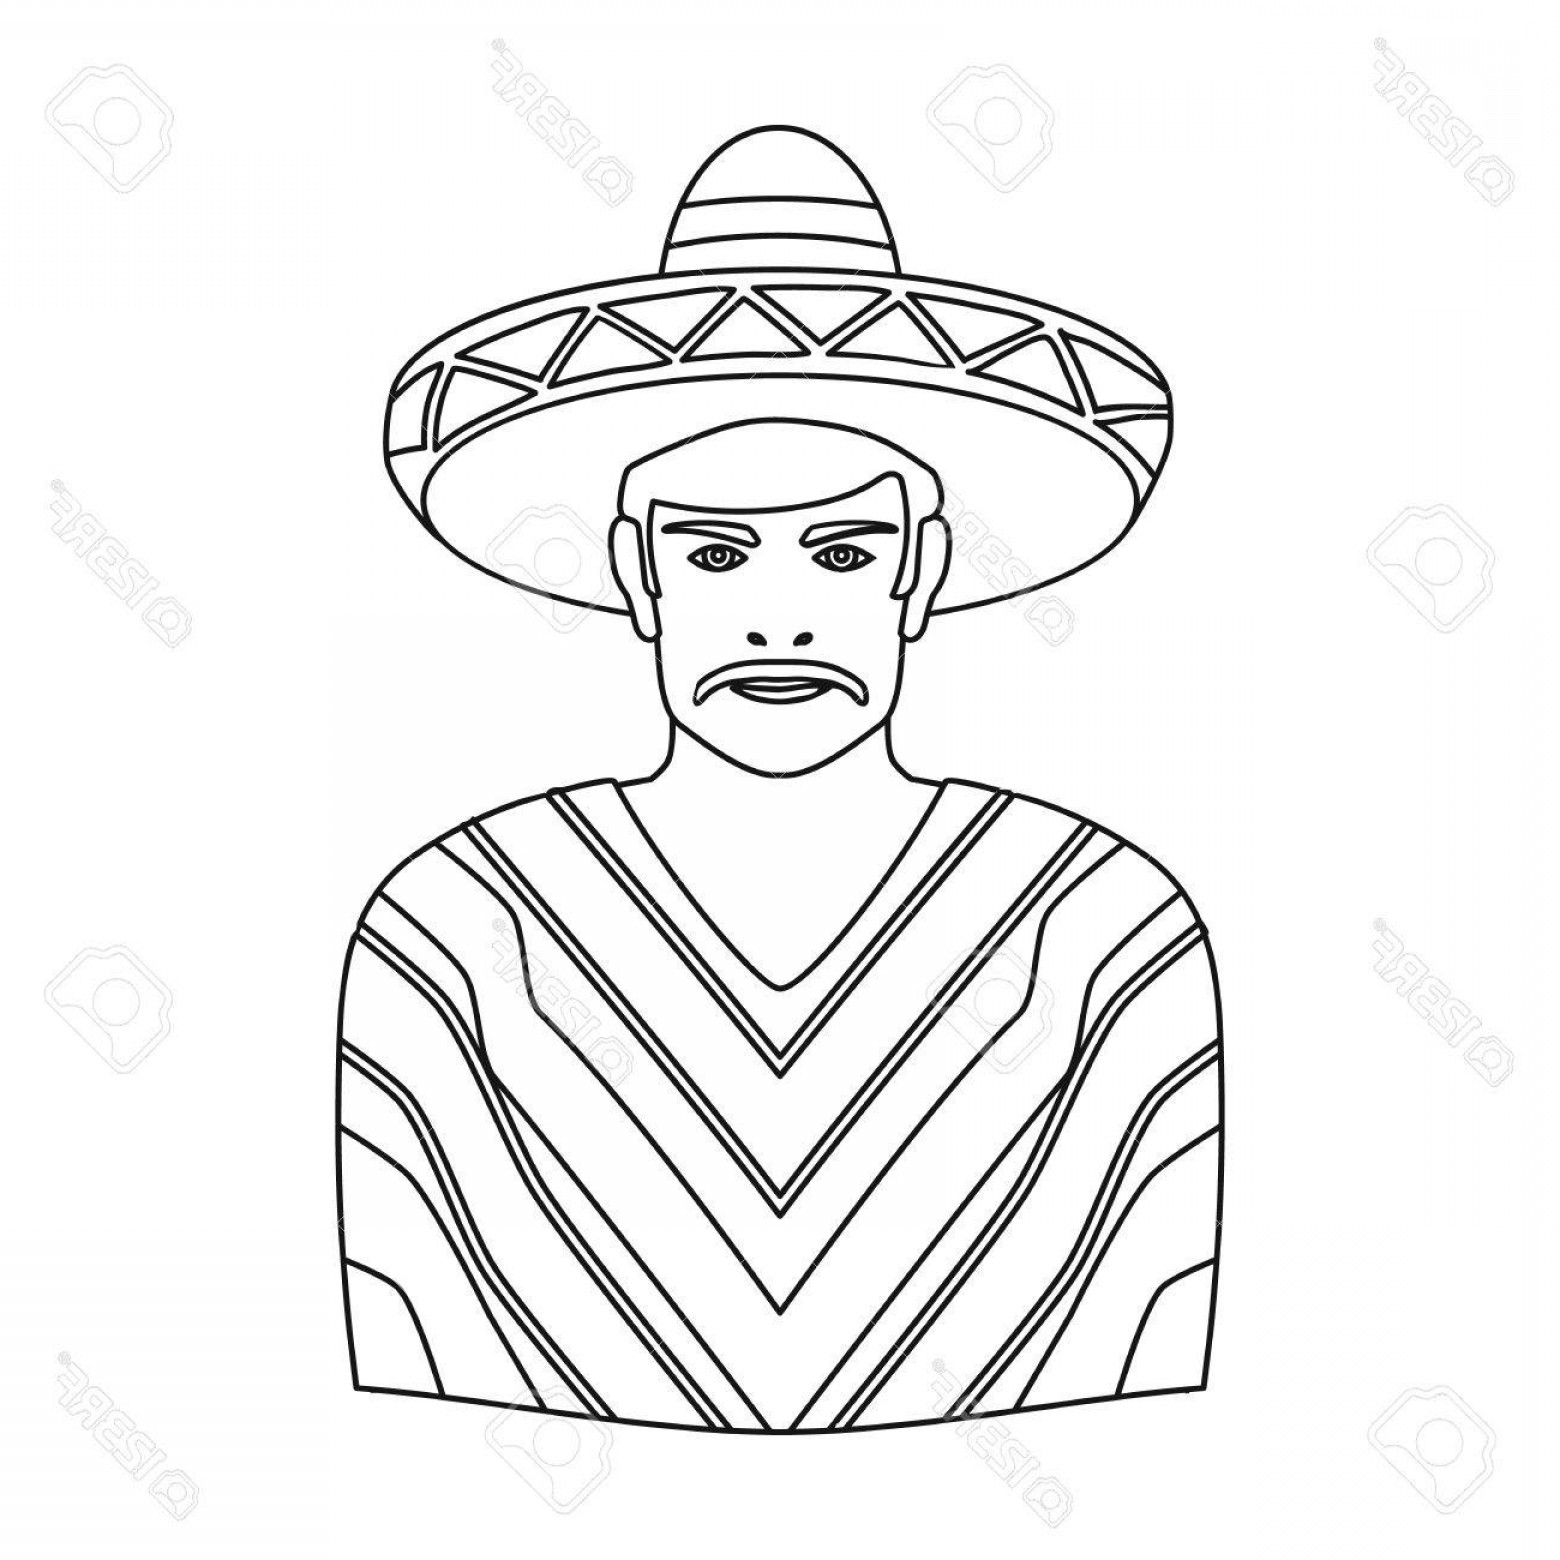 Sombrero Vector Outline: Photostock Vector Mexican Man In Sombrero And Poncho Icon In Outline Style Isolated On White Background Mexico Country